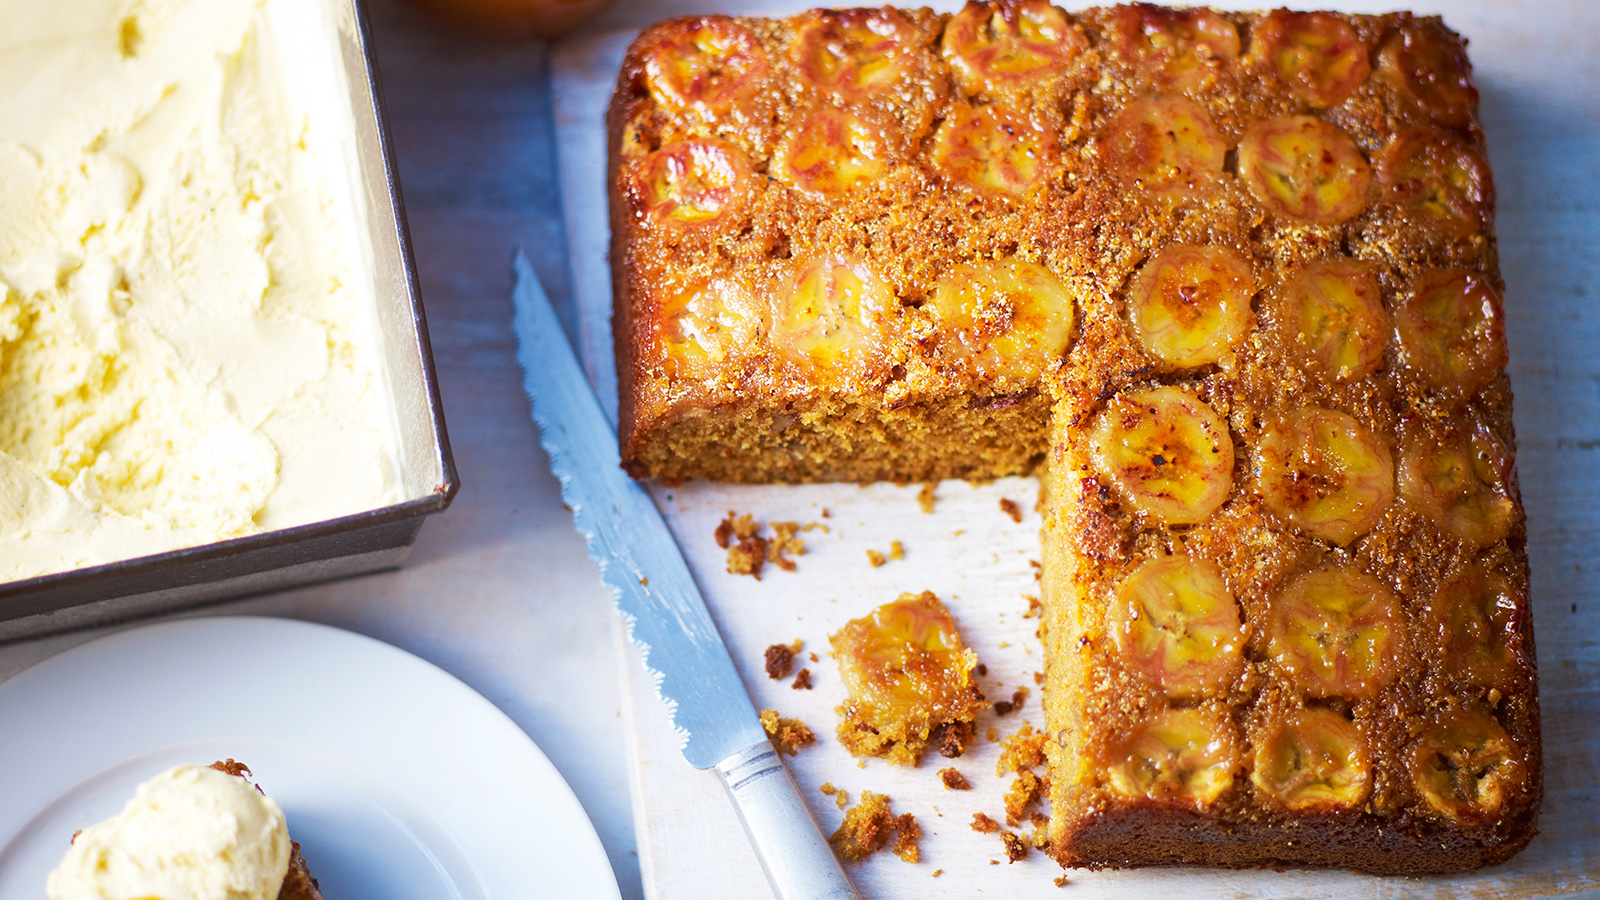 Canal Cocina Lorraine Pascale Tarta Dolce And Banana Dolce And Banana Cake Lorraine